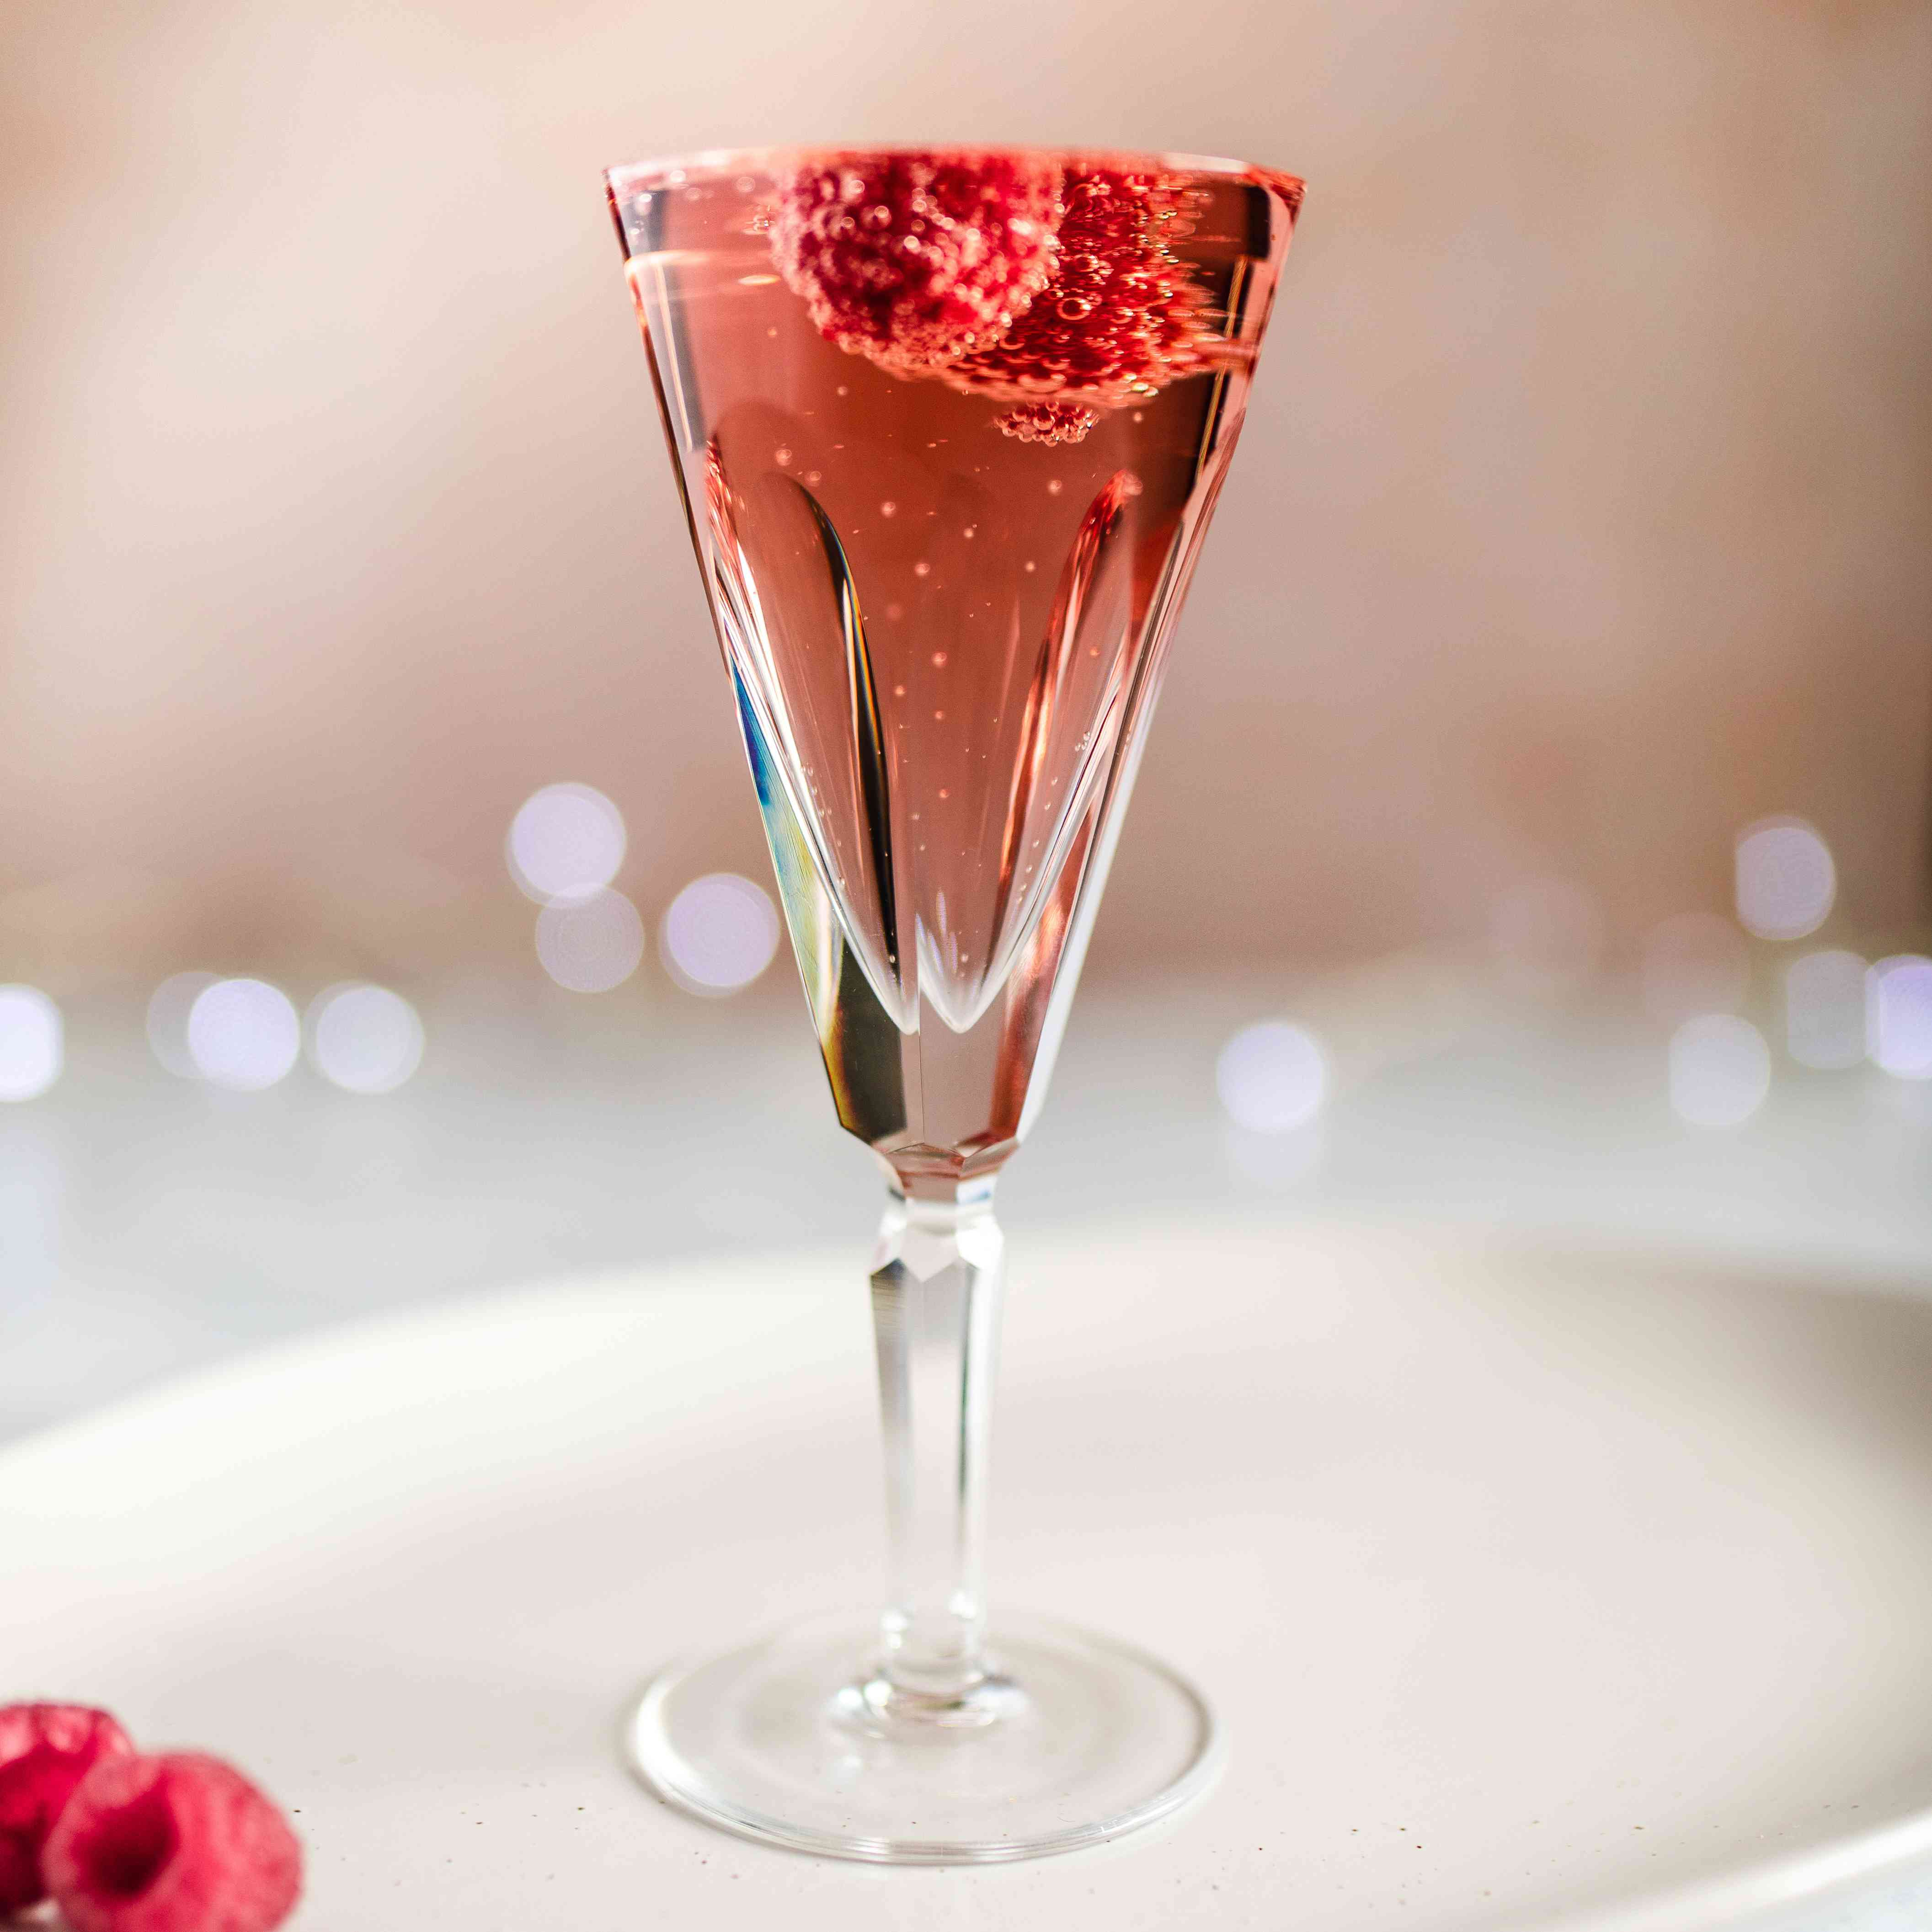 champagne and chambord with raspberries on top